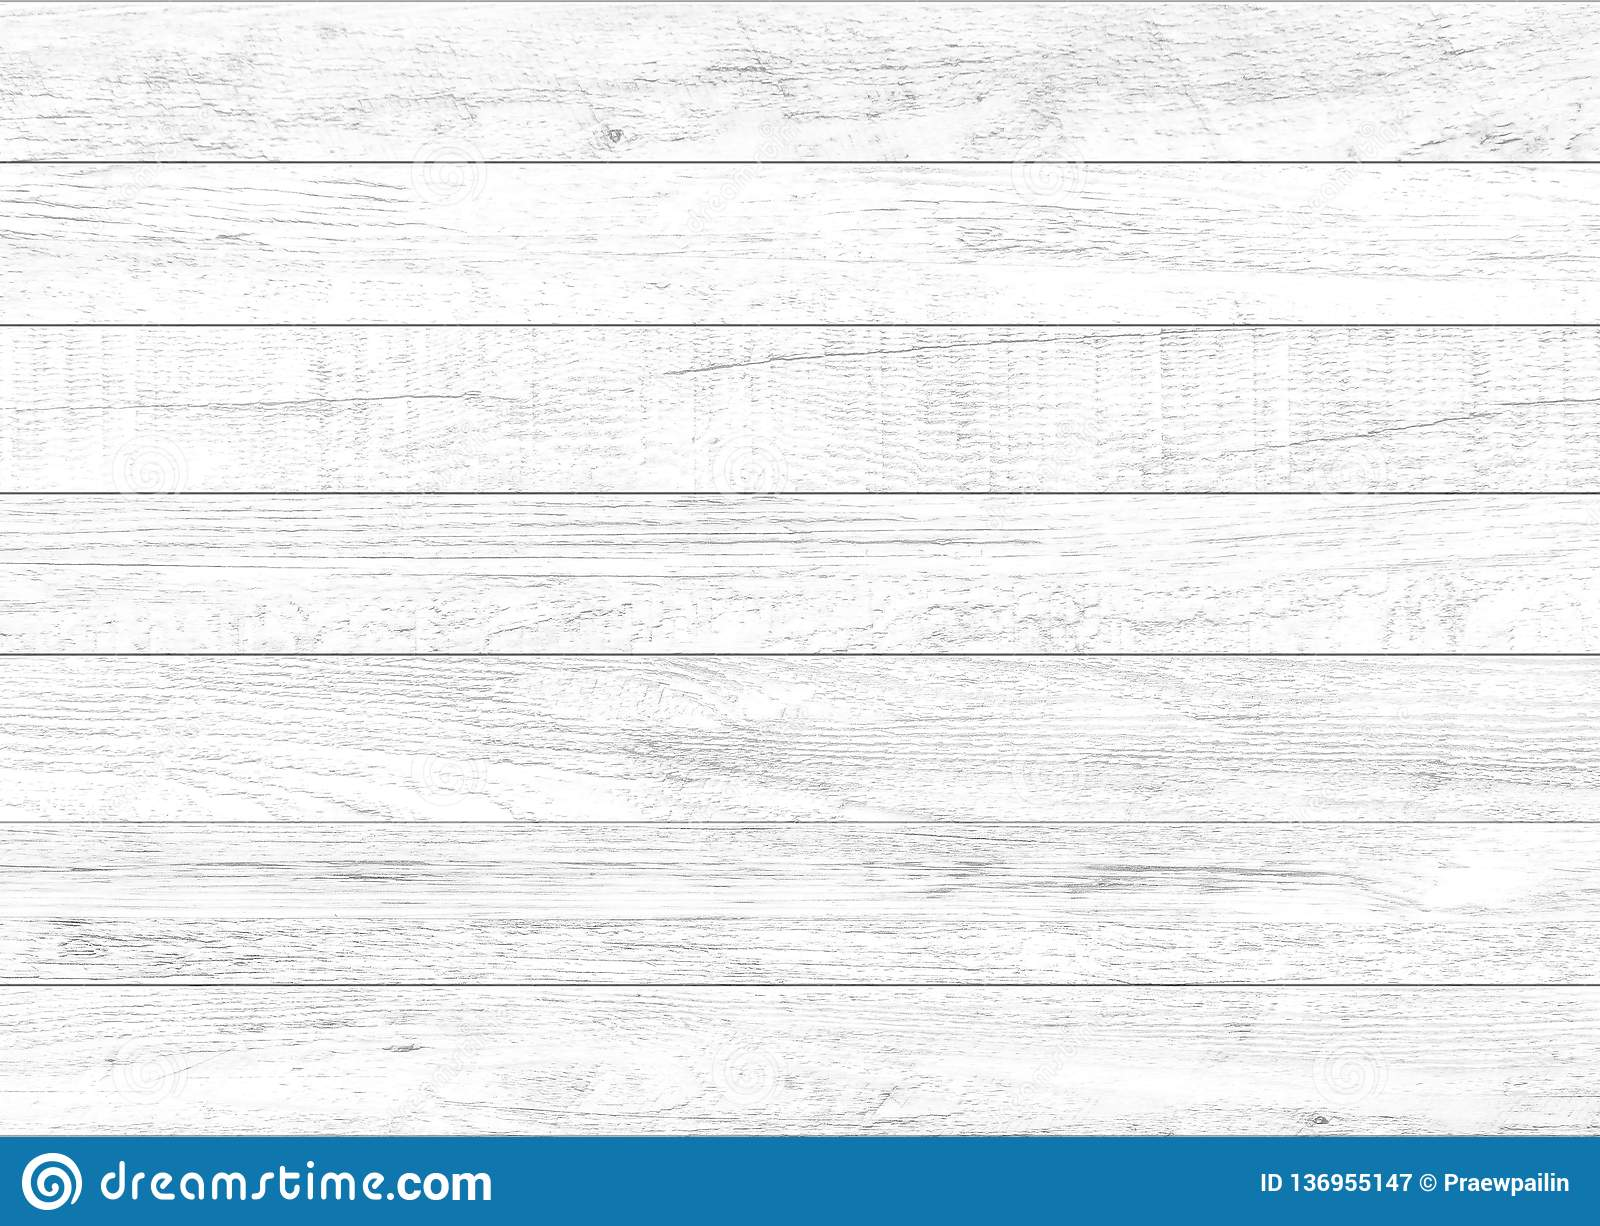 White natural wood wall background. Wood pattern and texture background